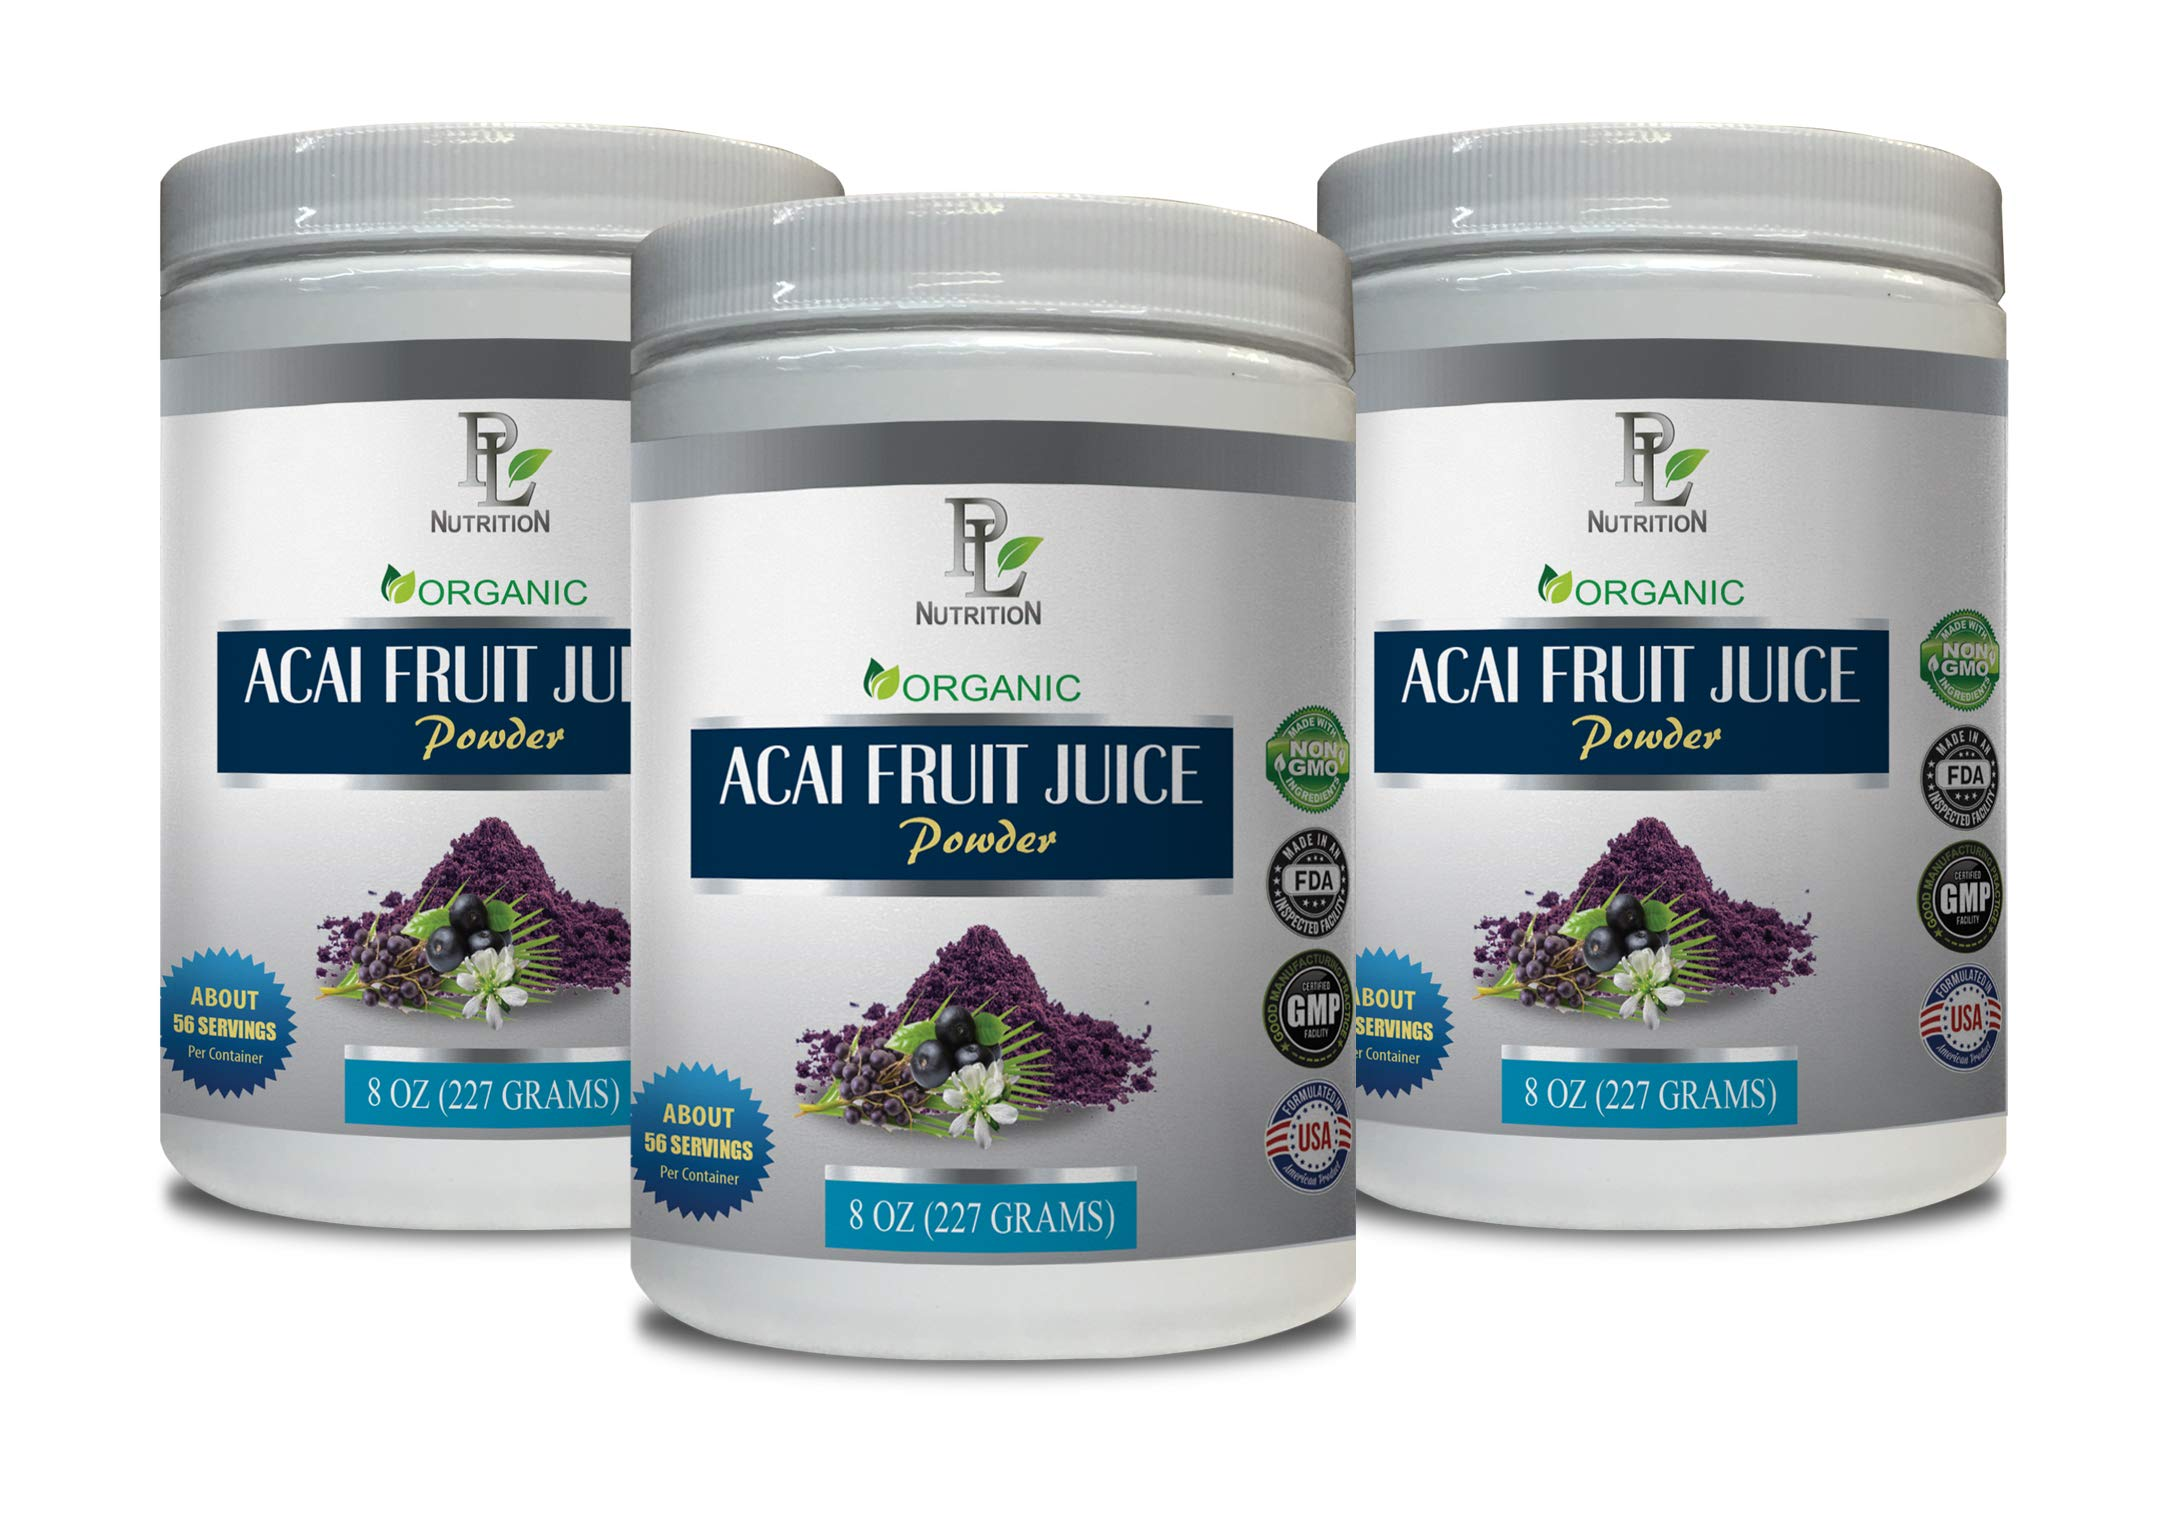 Cholesterol reducing Supplements - ACAI Fruit Juice - Powder Organic - acai Hair Products - 3 Cans 24 OZ (195 Servings)